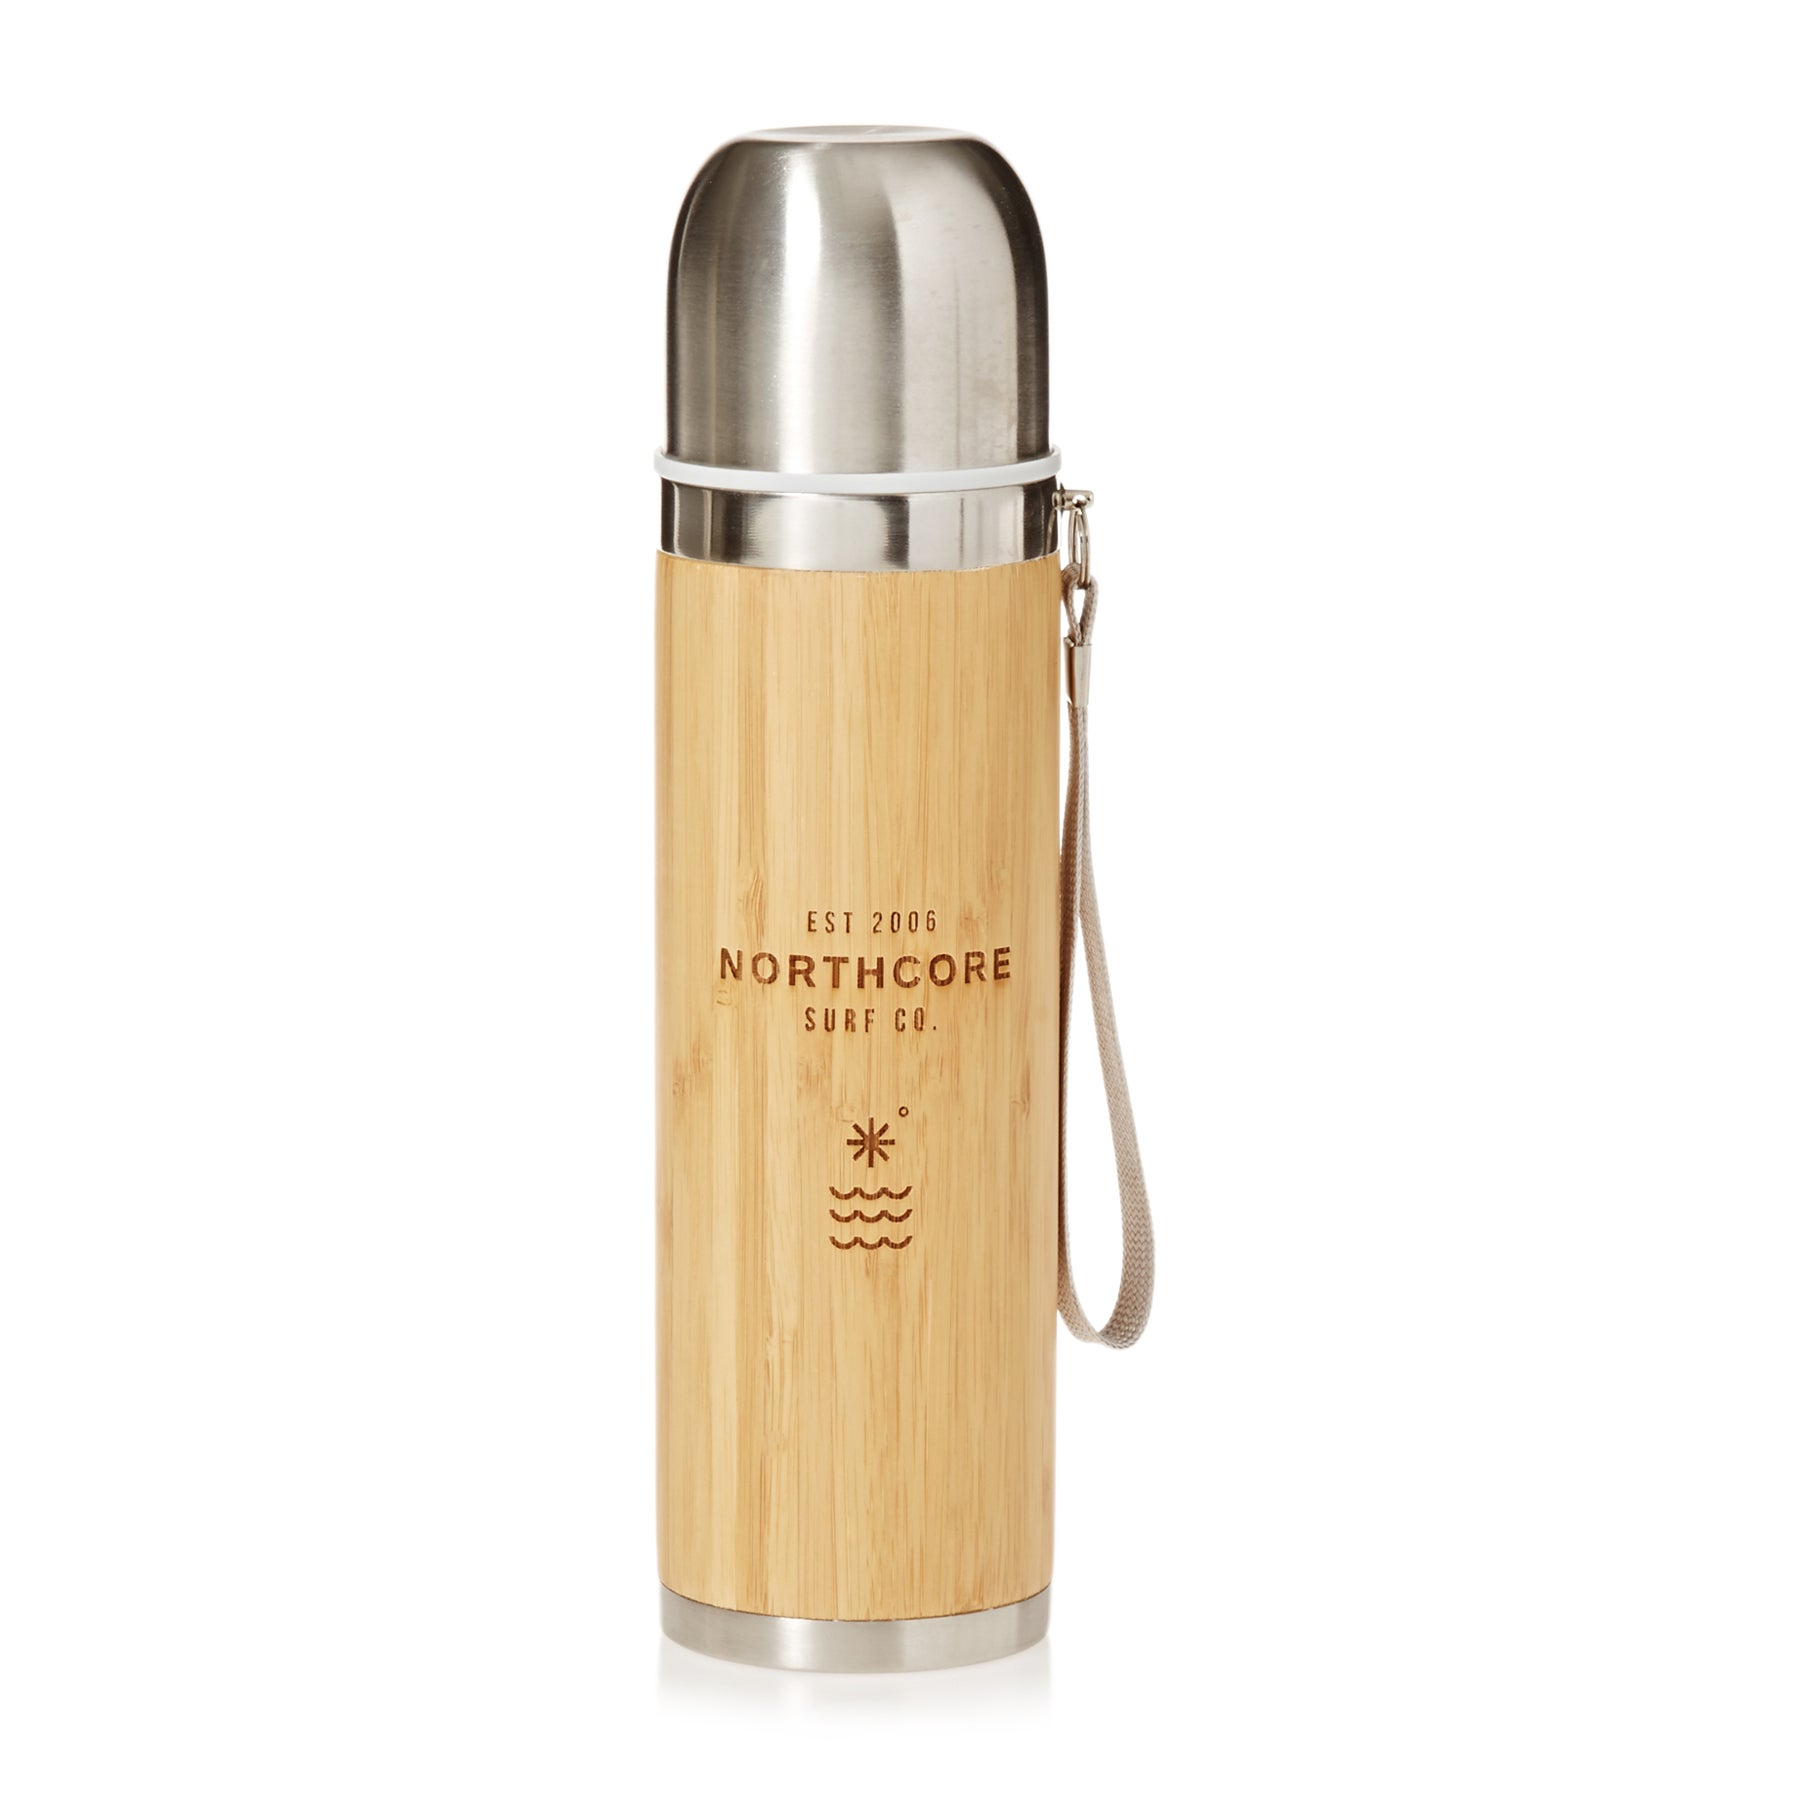 Gourde Northcore Adventure Bamboo Stainless Steel 360ml with Mug - Silver